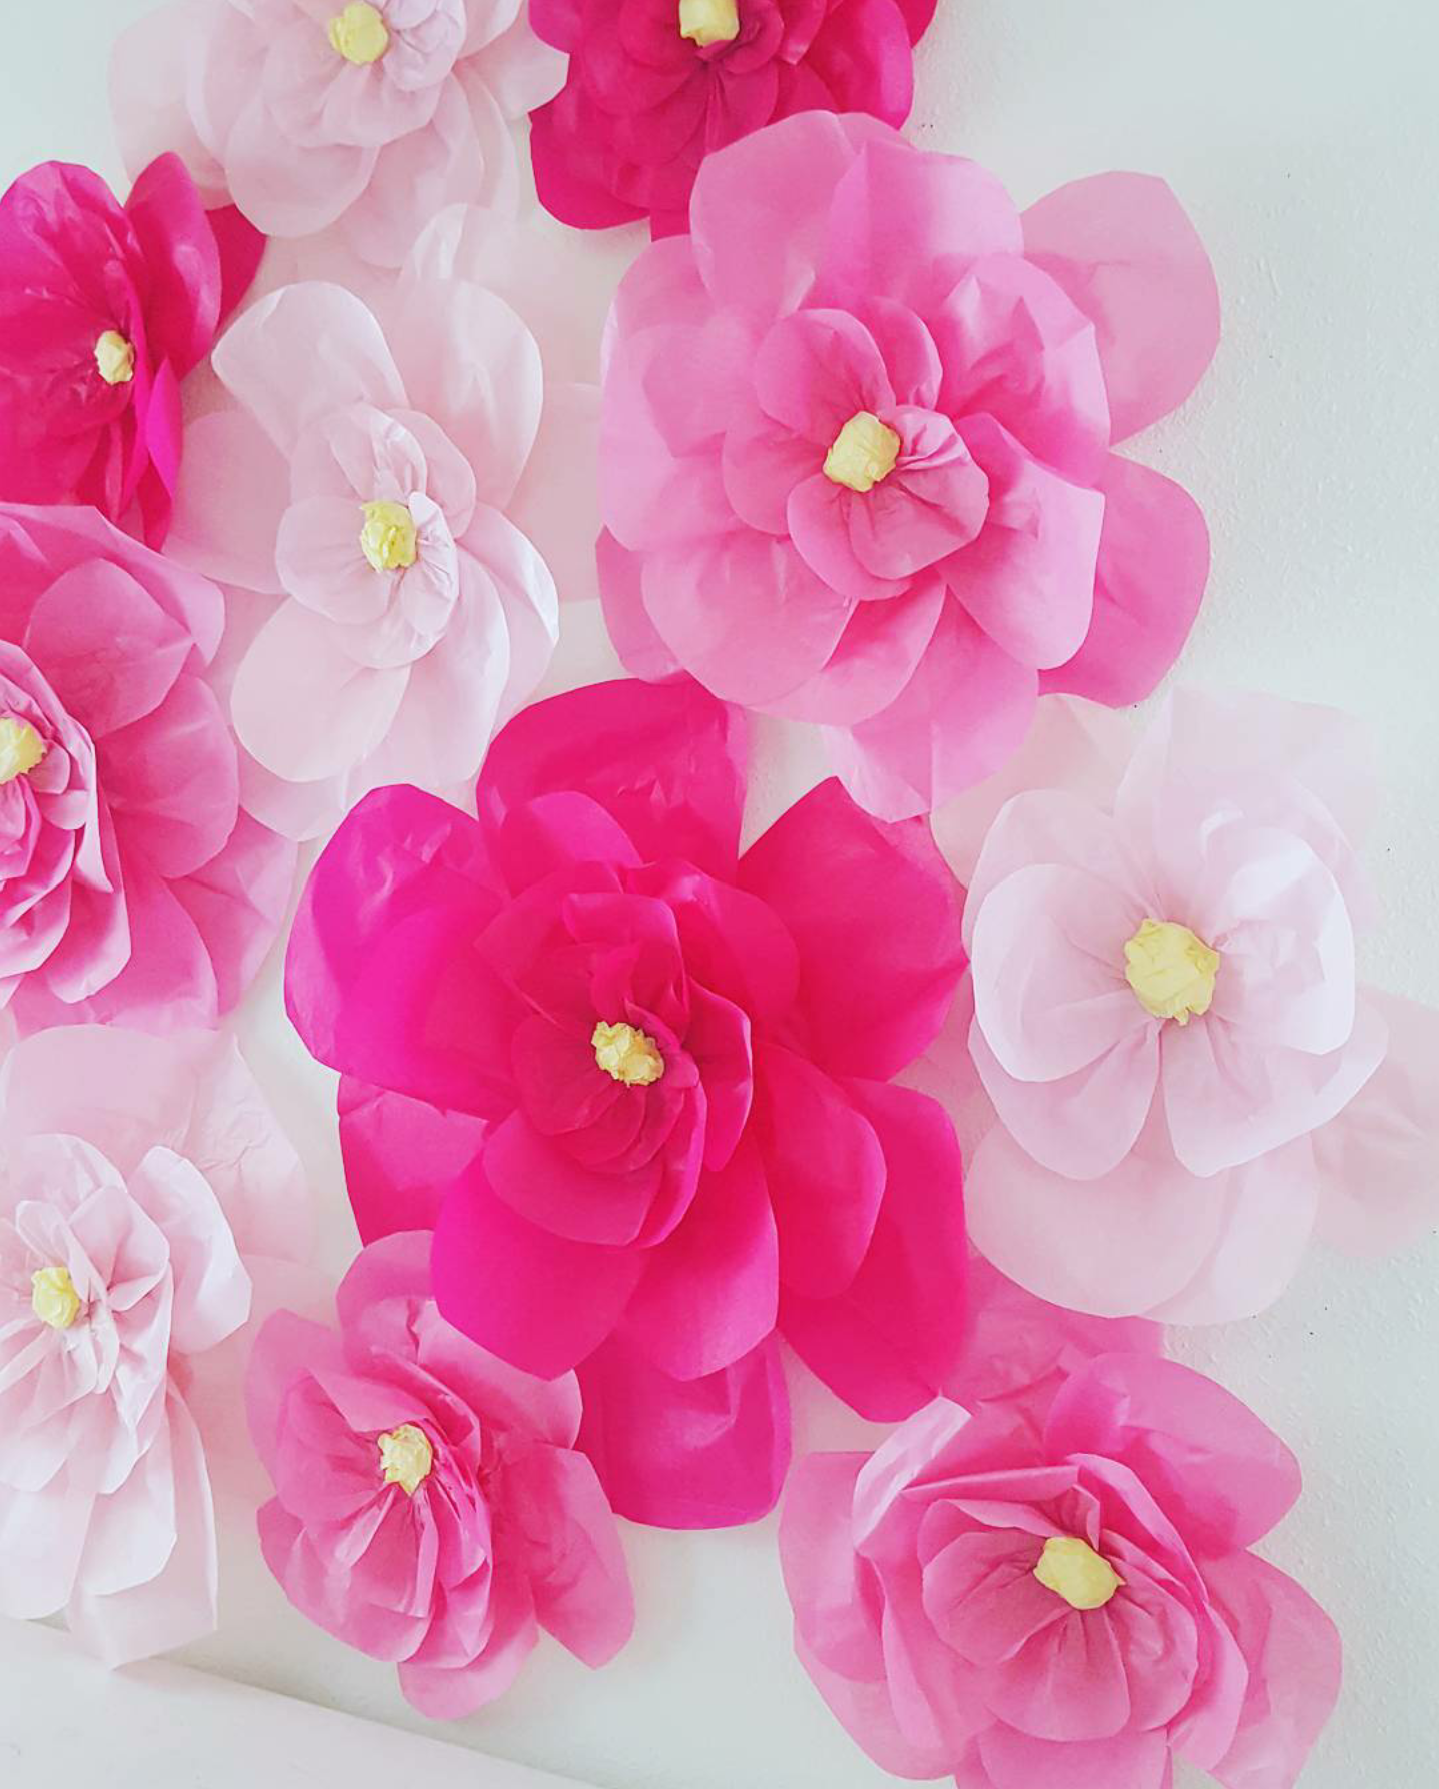 Oversized Tissue Paper Flowers Are An Inexpensive Way To Add Some